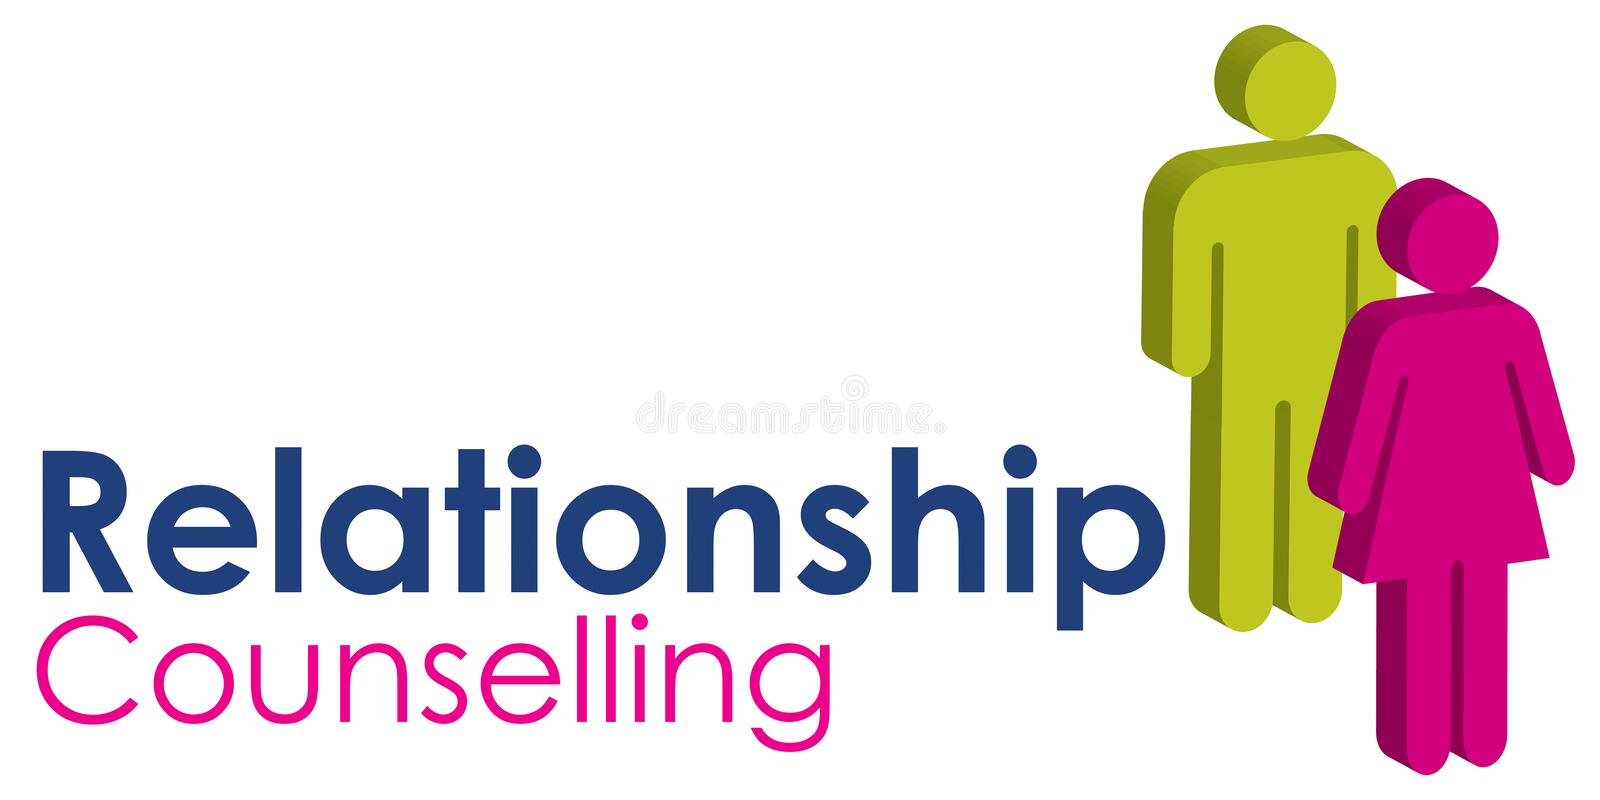 Relationship Counselling Stock Image